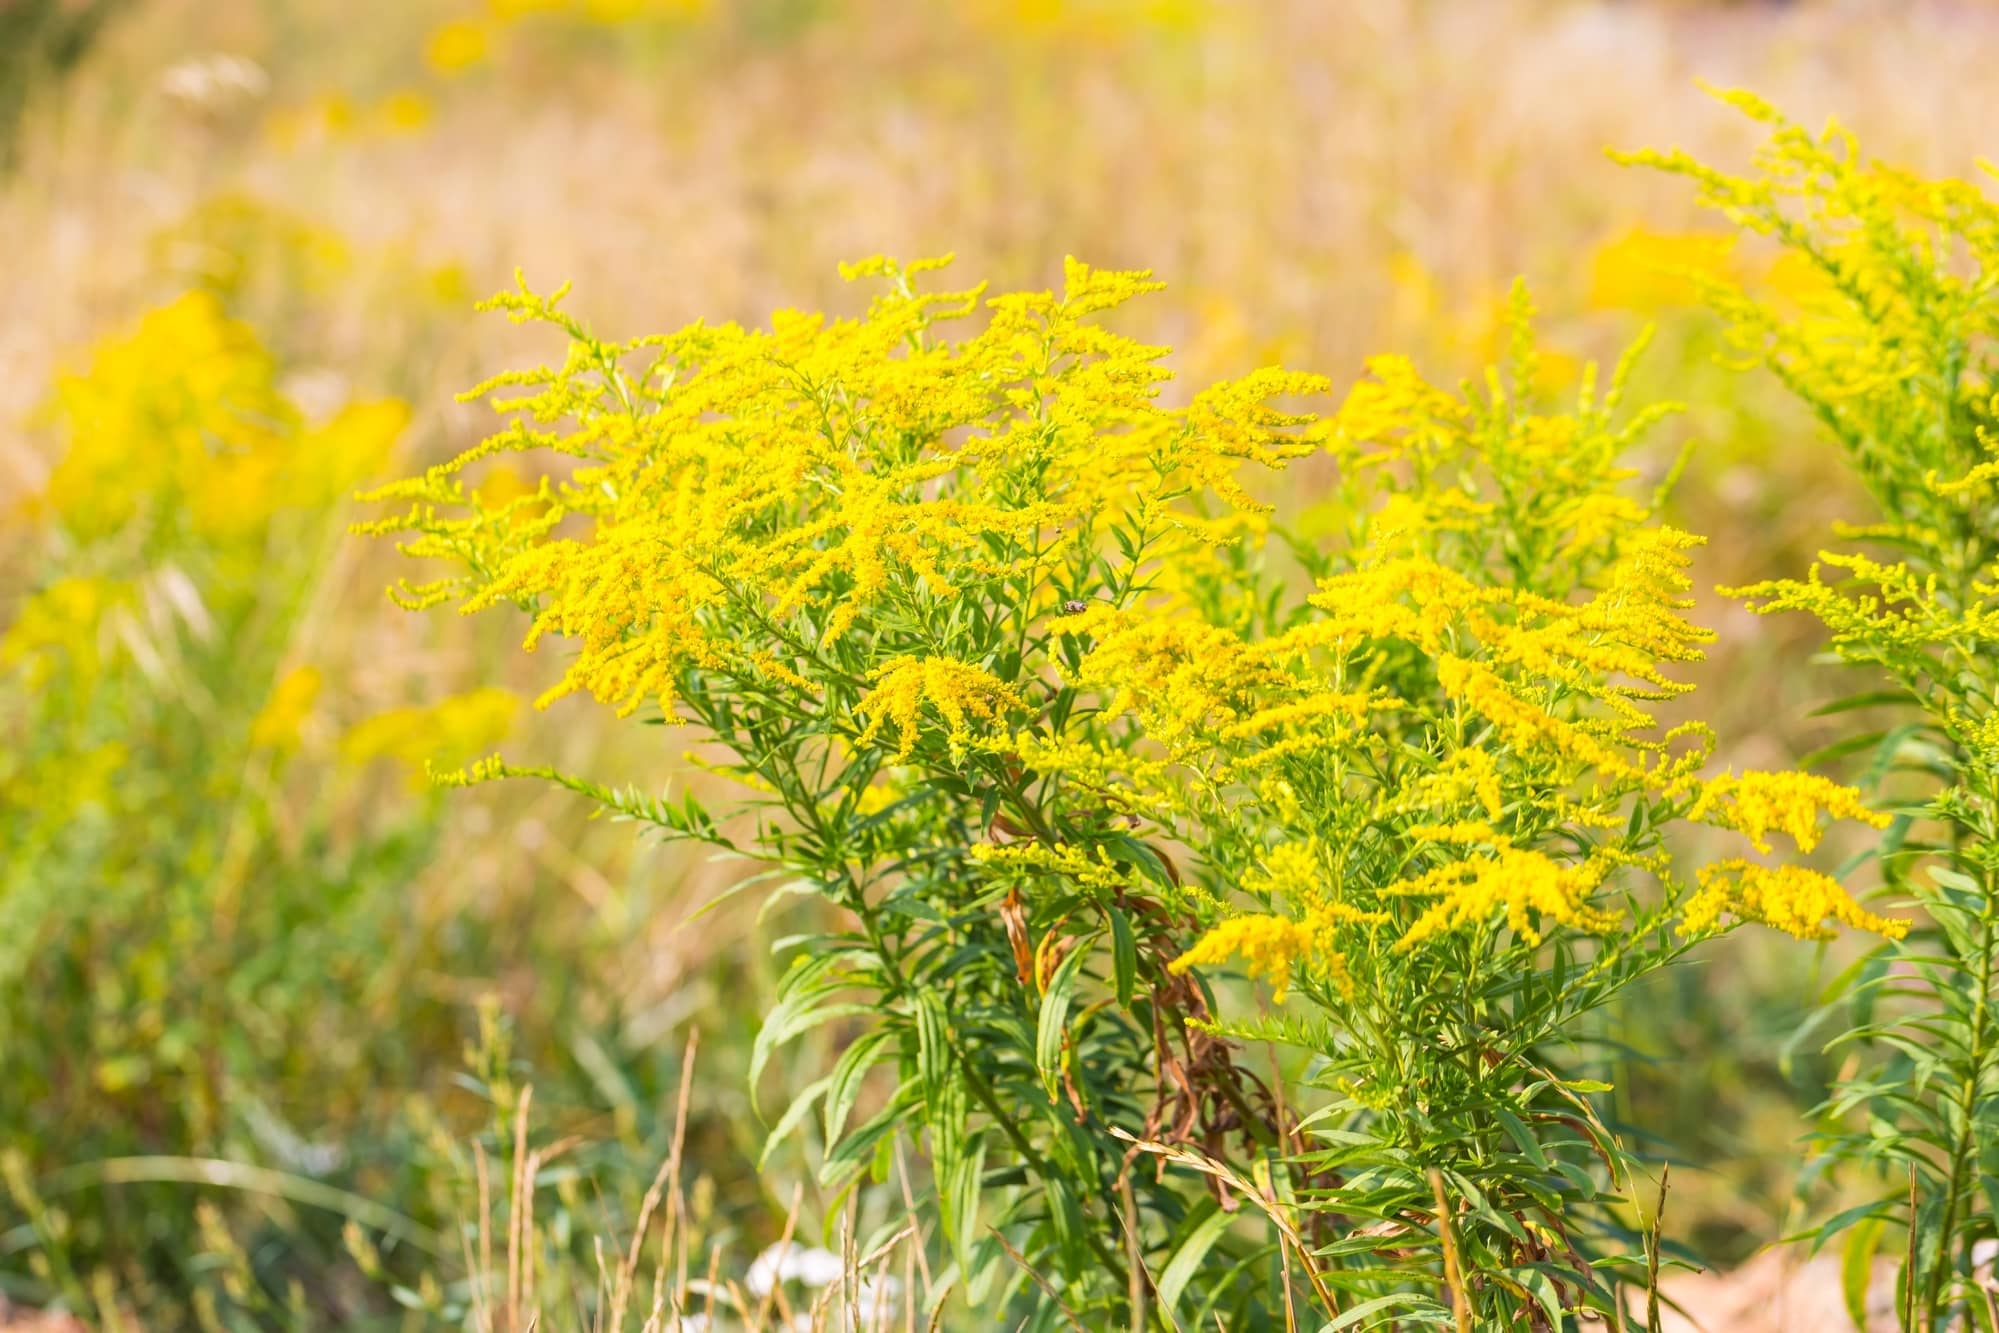 Goldenrod: The Top Wound Herb